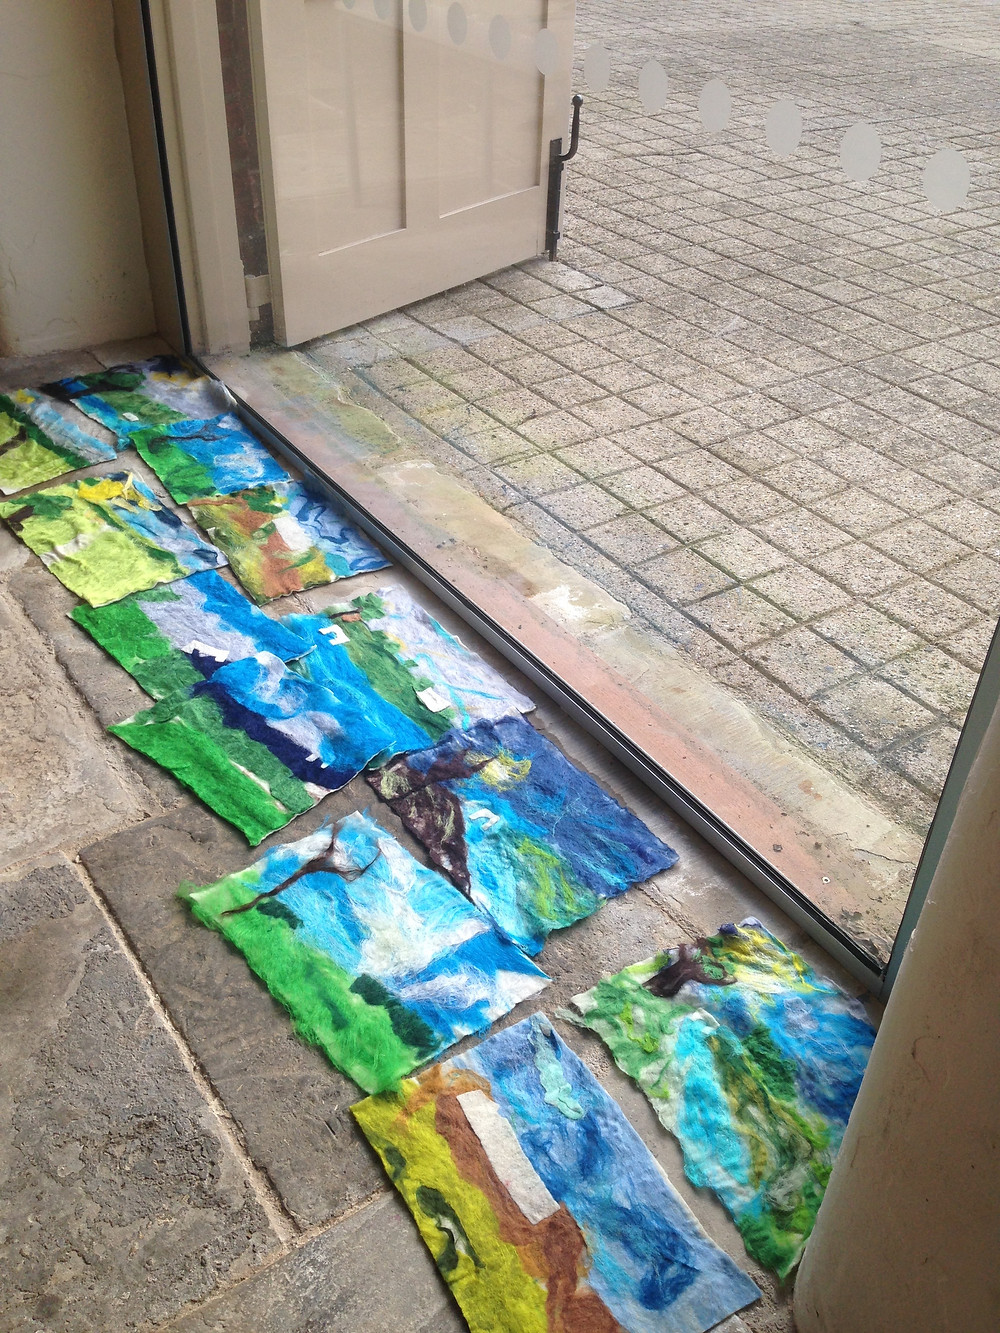 Felts drying in the court yard windows